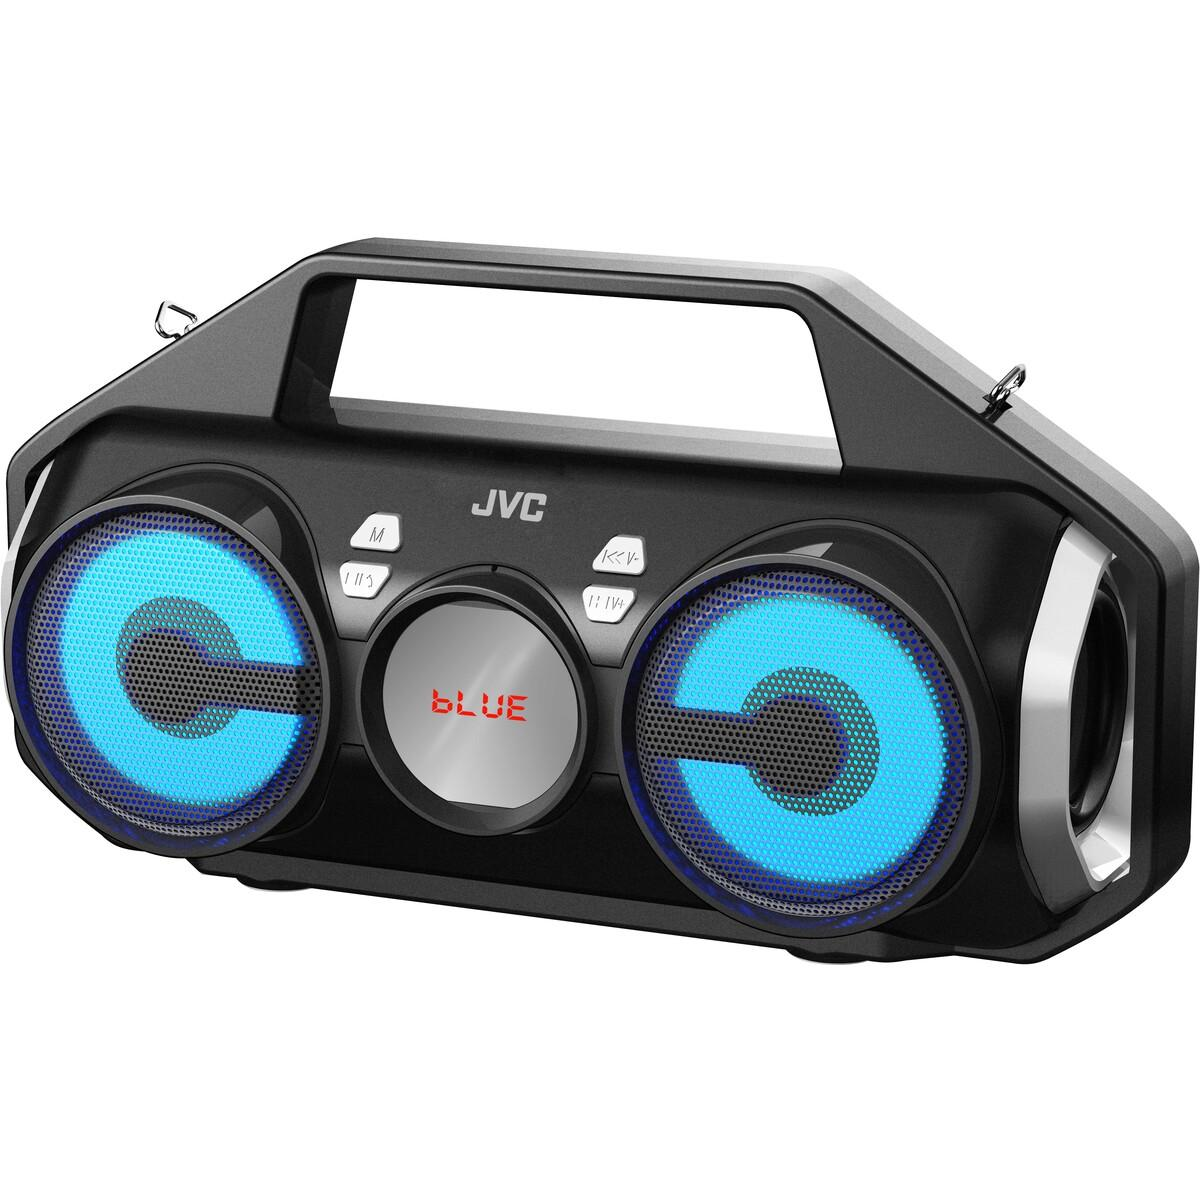 JVC Portable Bluetooth Speaker with FM Radio